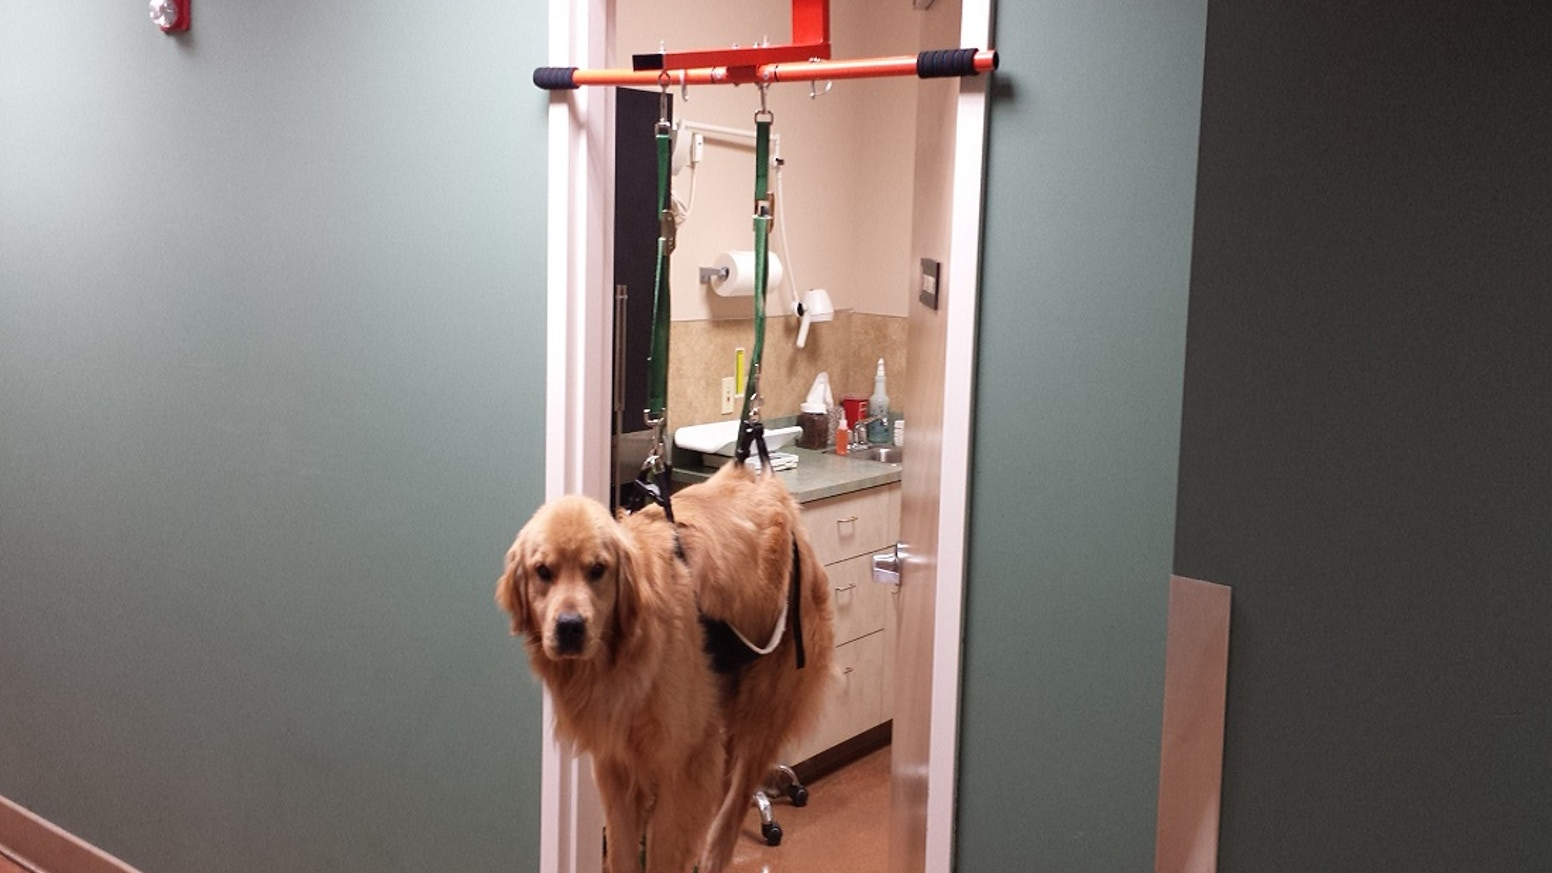 A restraining device that fits in a door frame to keep a dog immobile and cooperative during treatments.